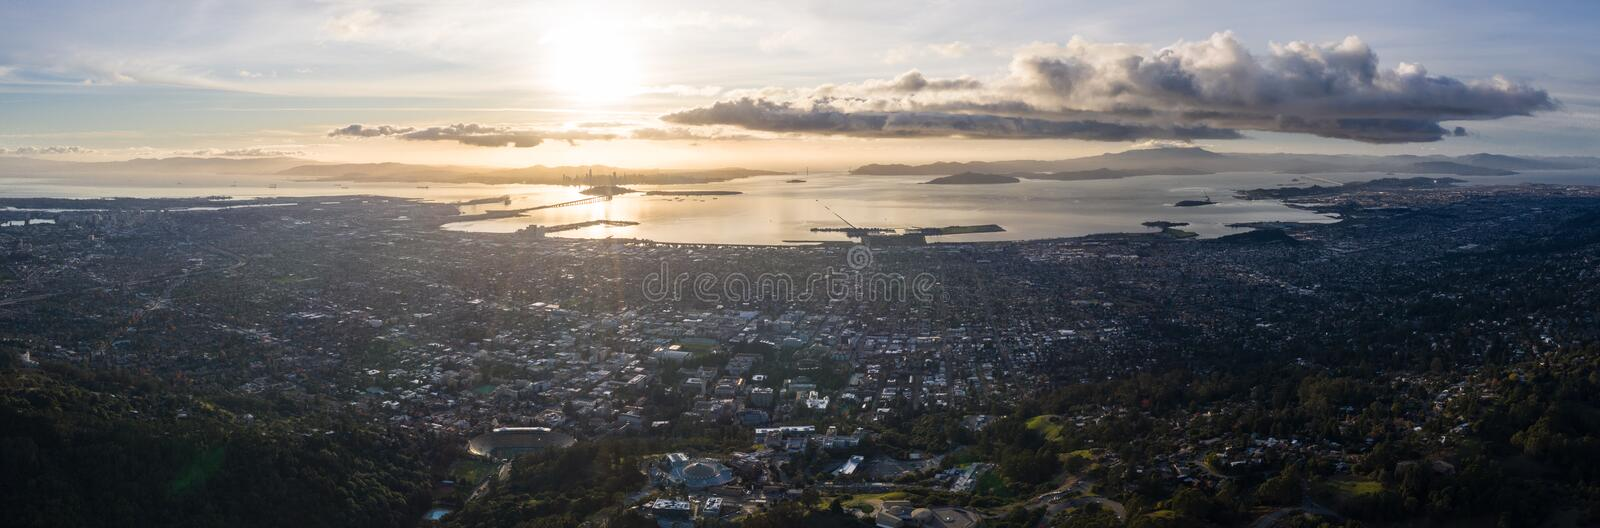 Aerial View of San Francisco Bay Area at Dusk. A serene sunset illuminates the densely populated San Francisco Bay area including Oakland, Berkeley, Emeryville royalty free stock photos